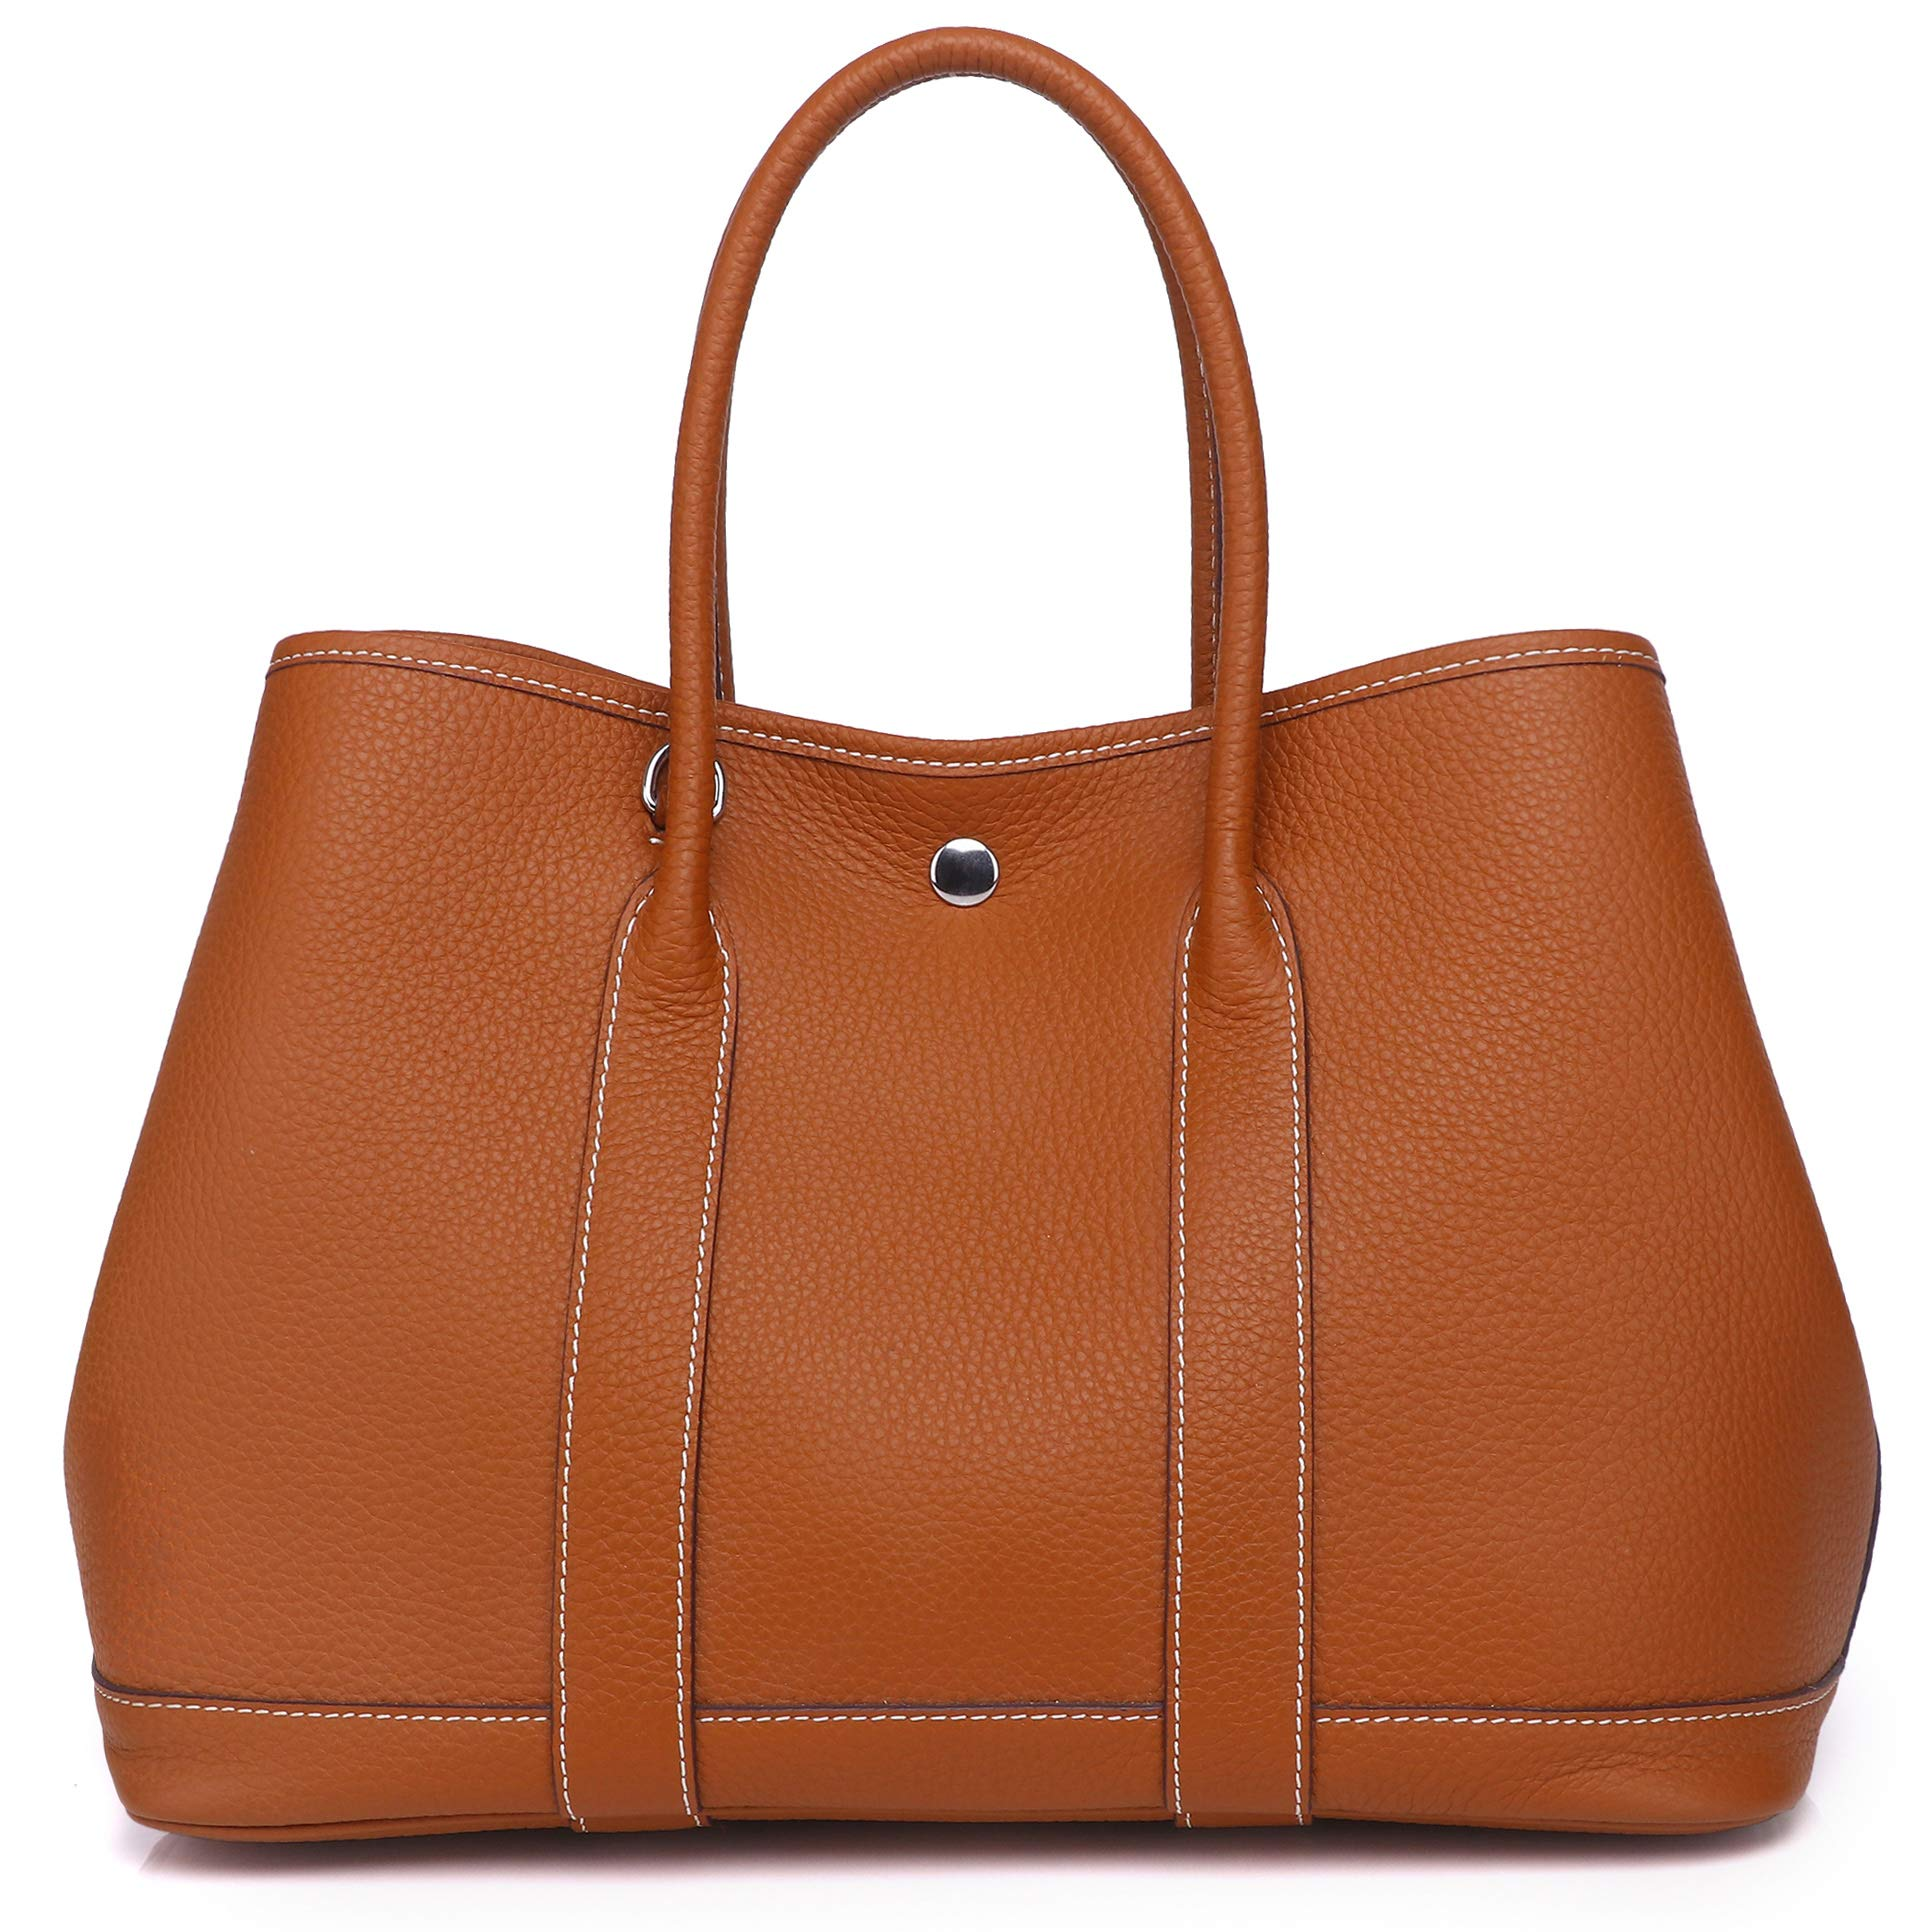 Kueh Women's Genuine Leather Tote Bag Top Handle Handbags